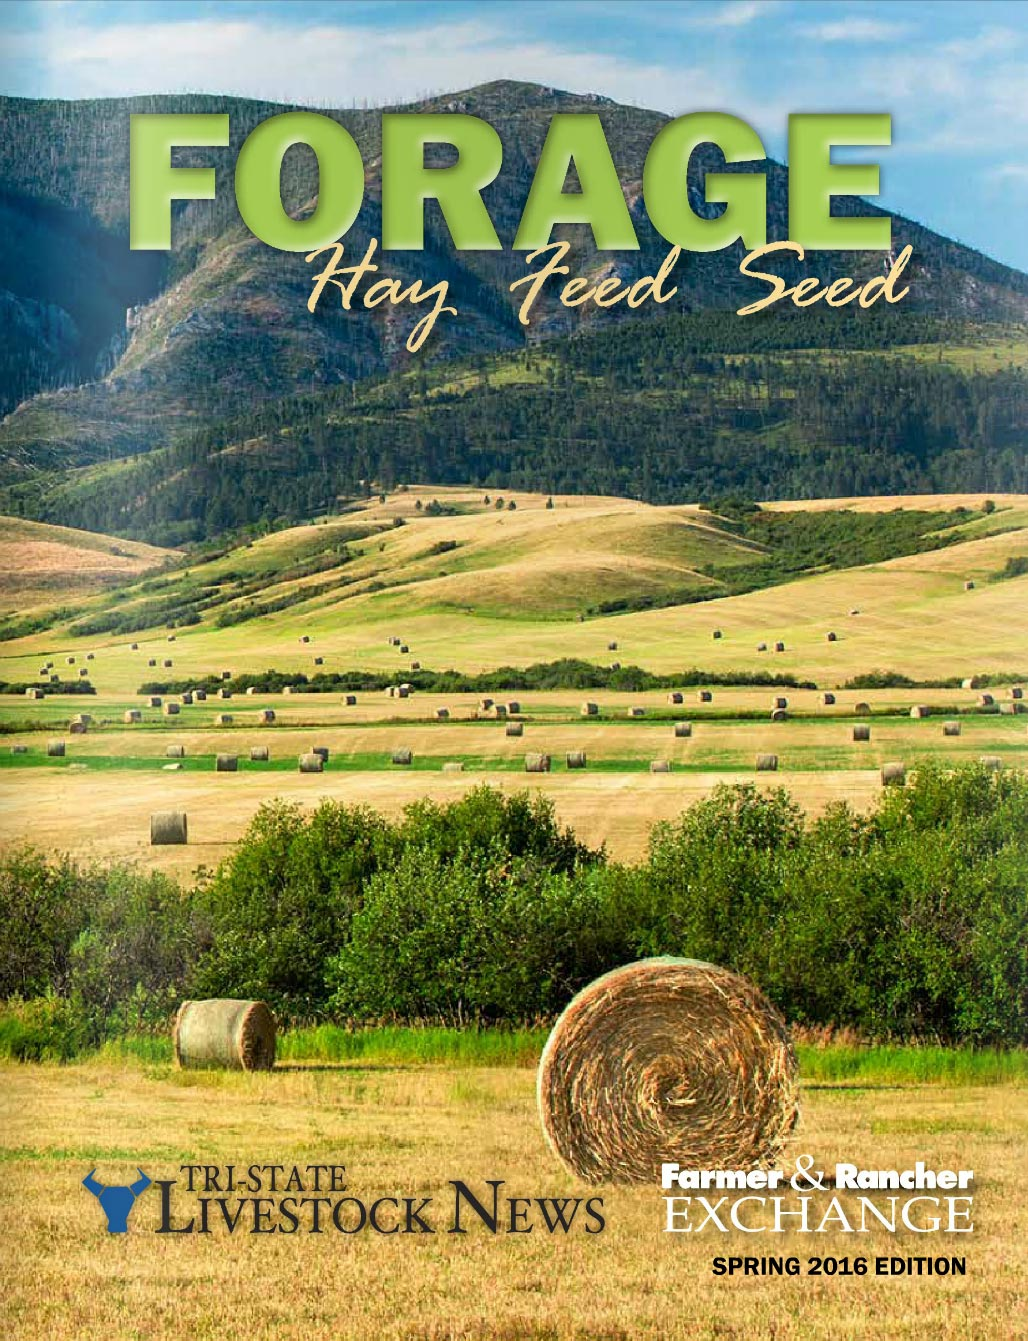 Forage Hay Feed & Seed